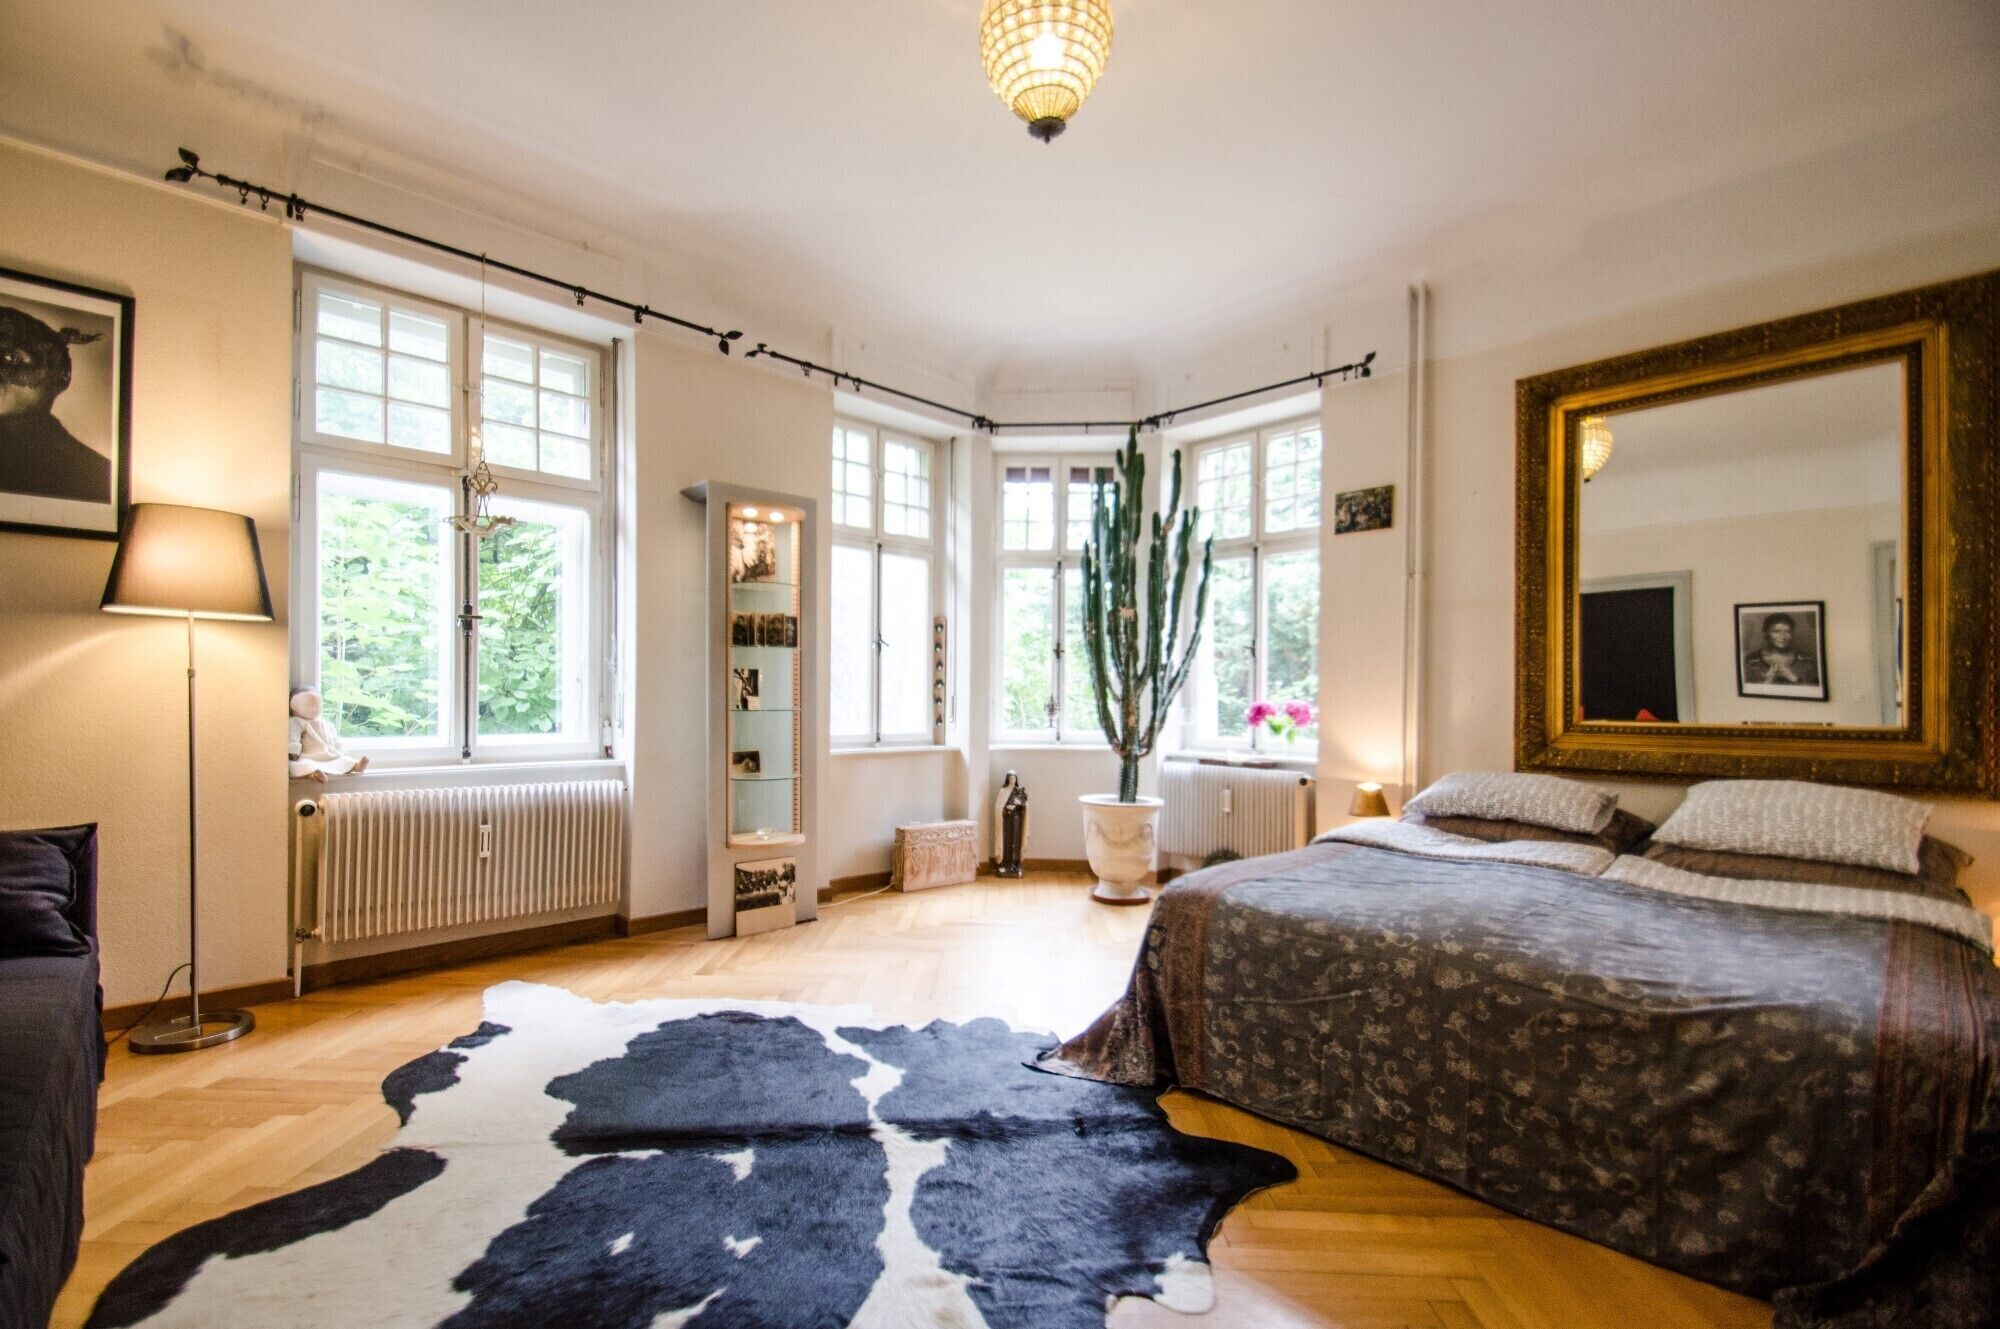 Apartment In Art Nouveau Style Villa With Large Garden 120m2 5 Minutes From Basel Basel Hotelbewertungen 2021 Expedia At